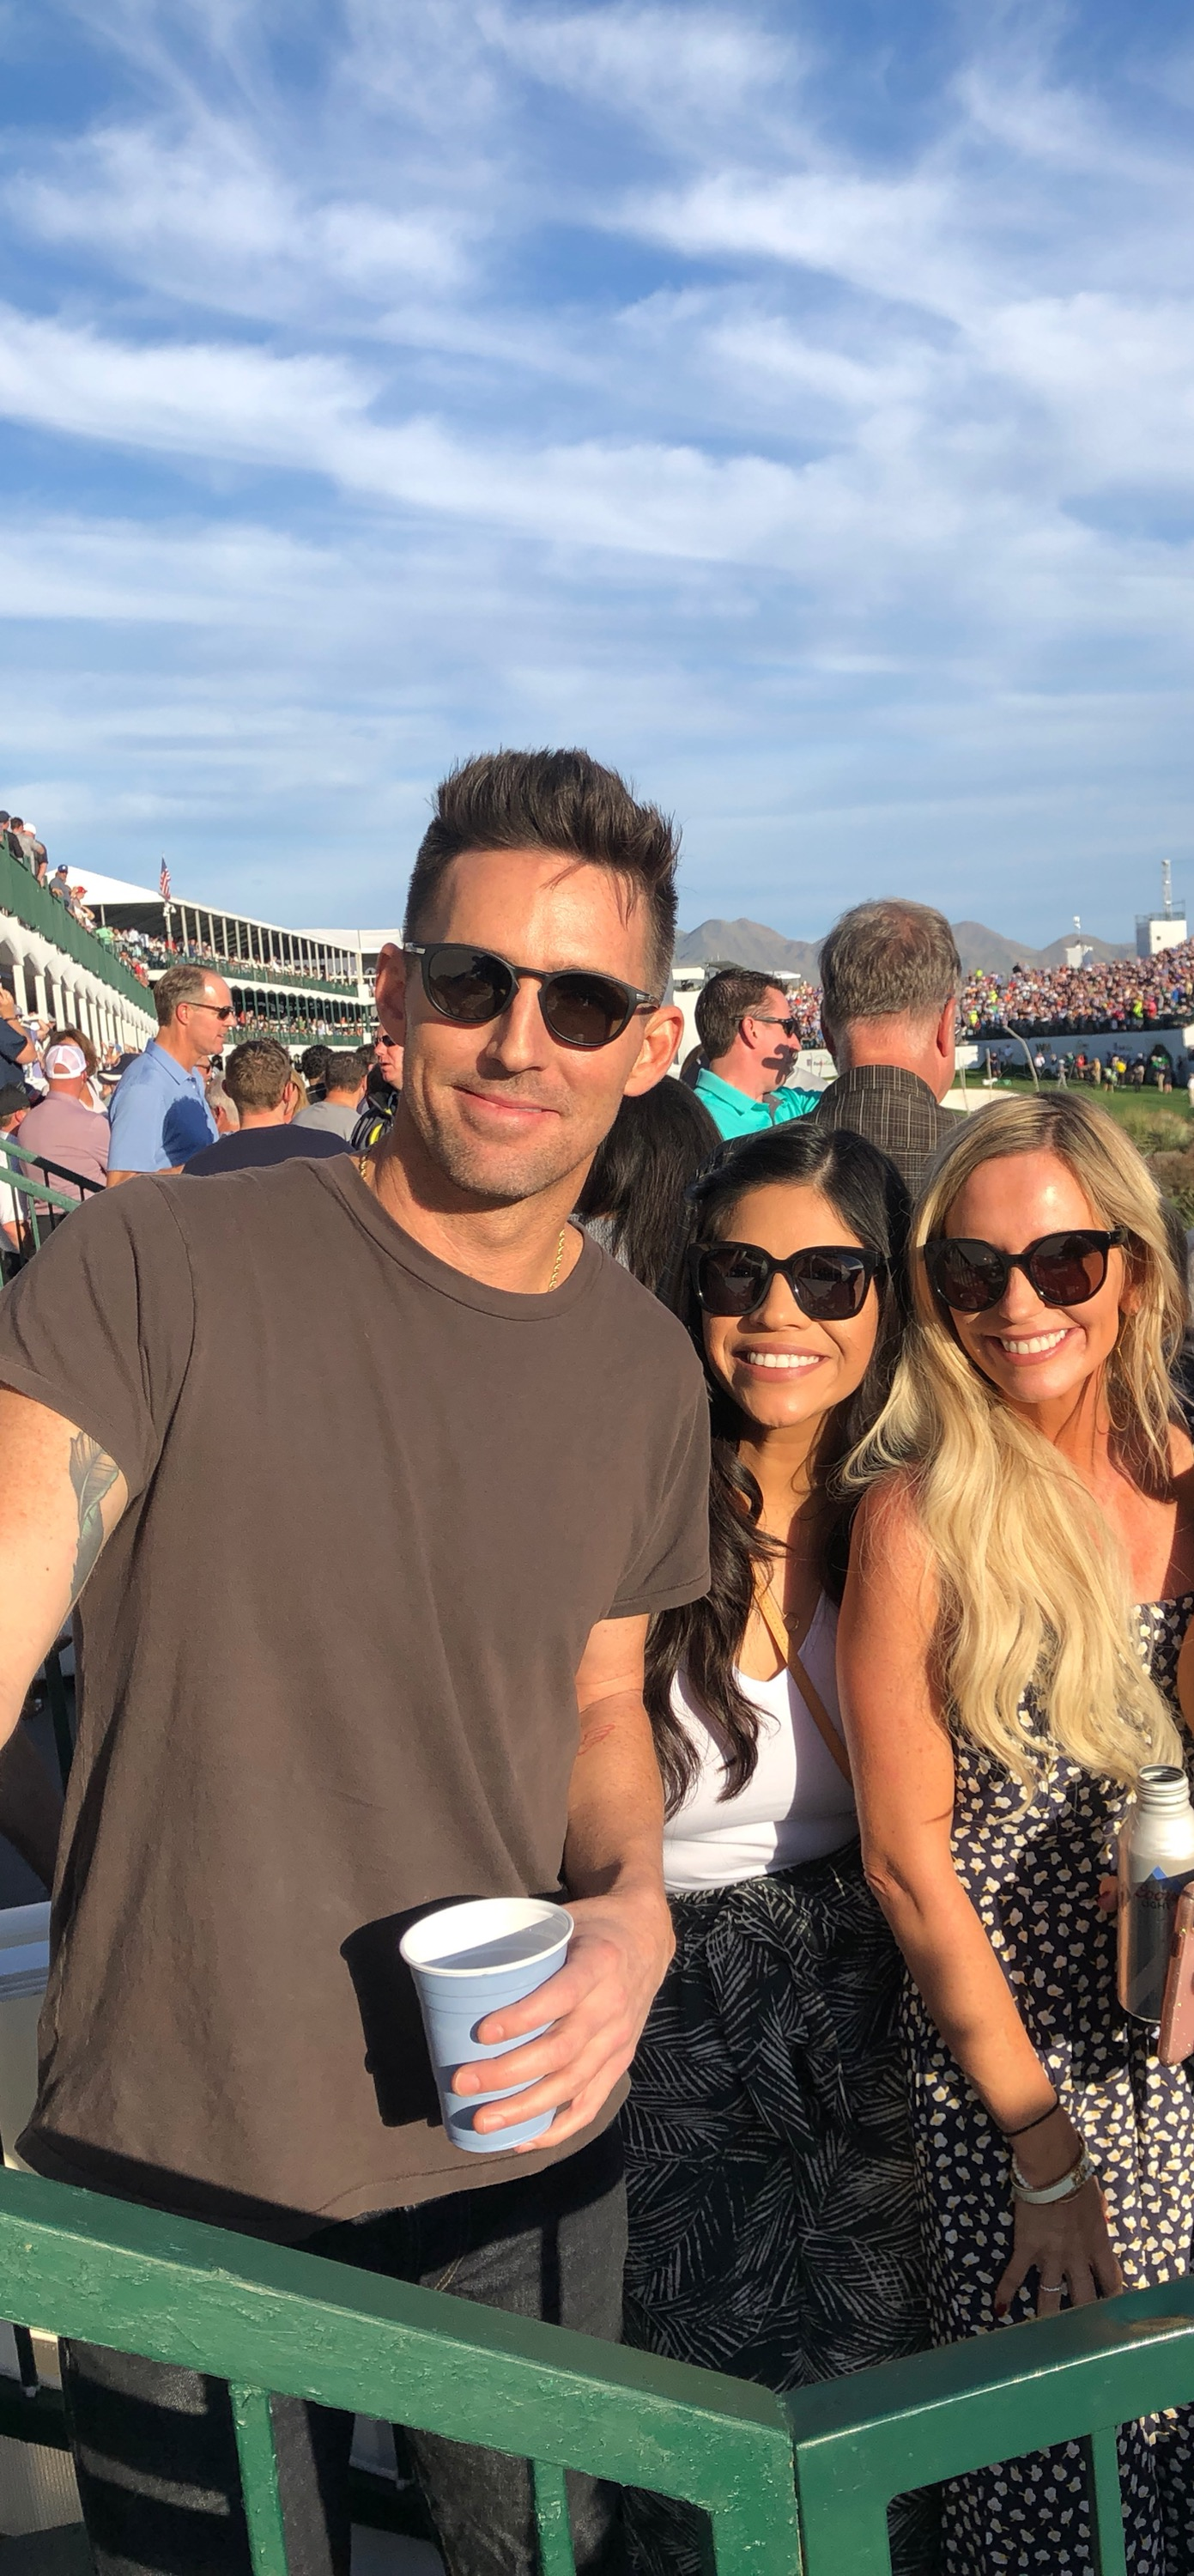 When Jake Owen is in the same Skybox as you….a picture is definitely necessary.